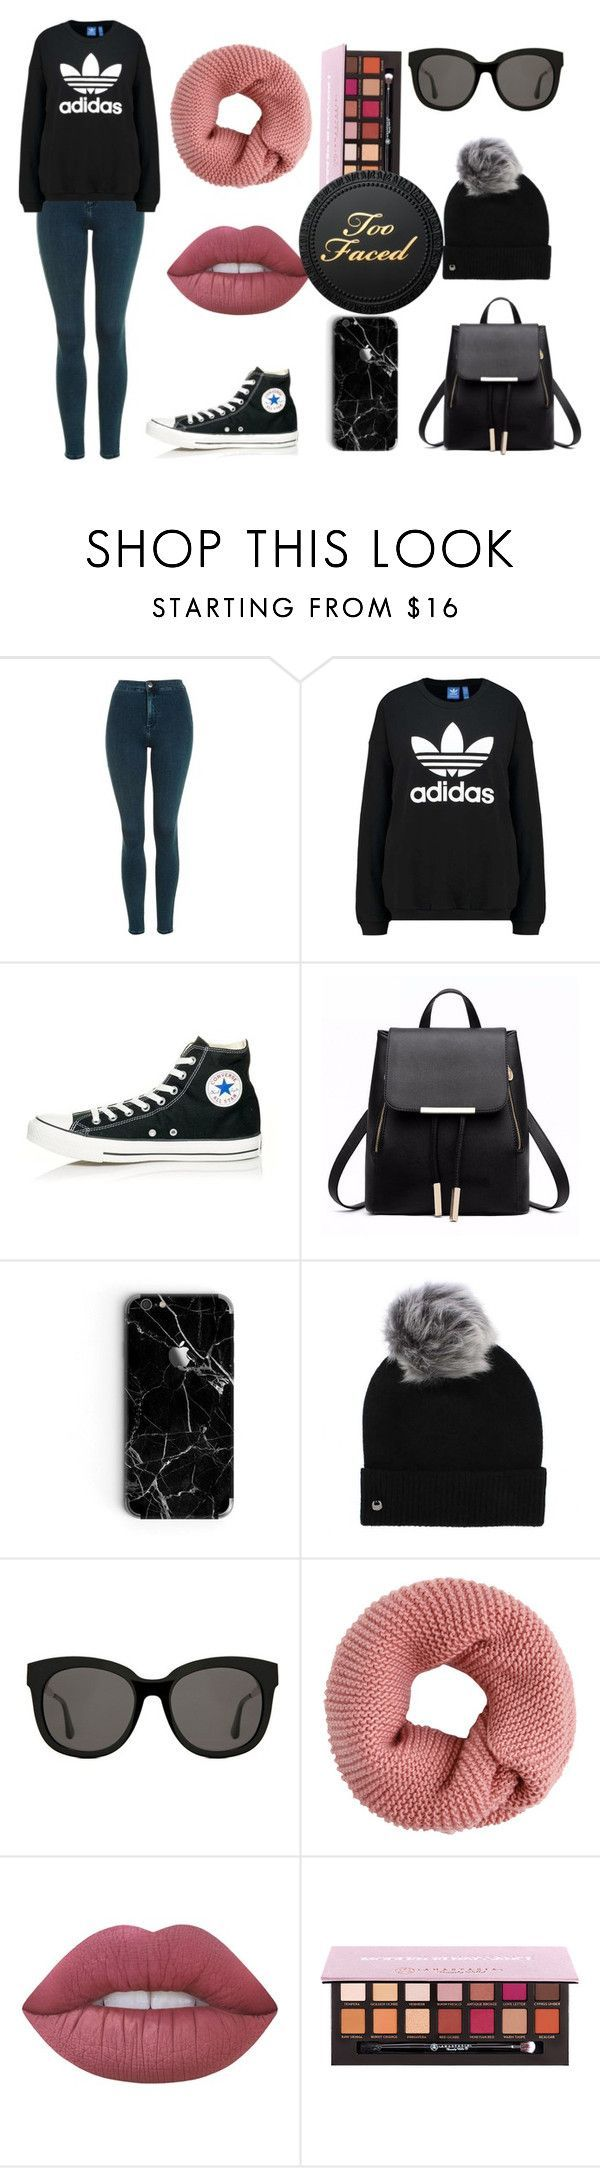 """""""Too Faced"""" by pinkybunny on Polyvore featuring moda, Topshop, adidas Originals, Converse, UGG, Gentle Monster y Lime Crime"""